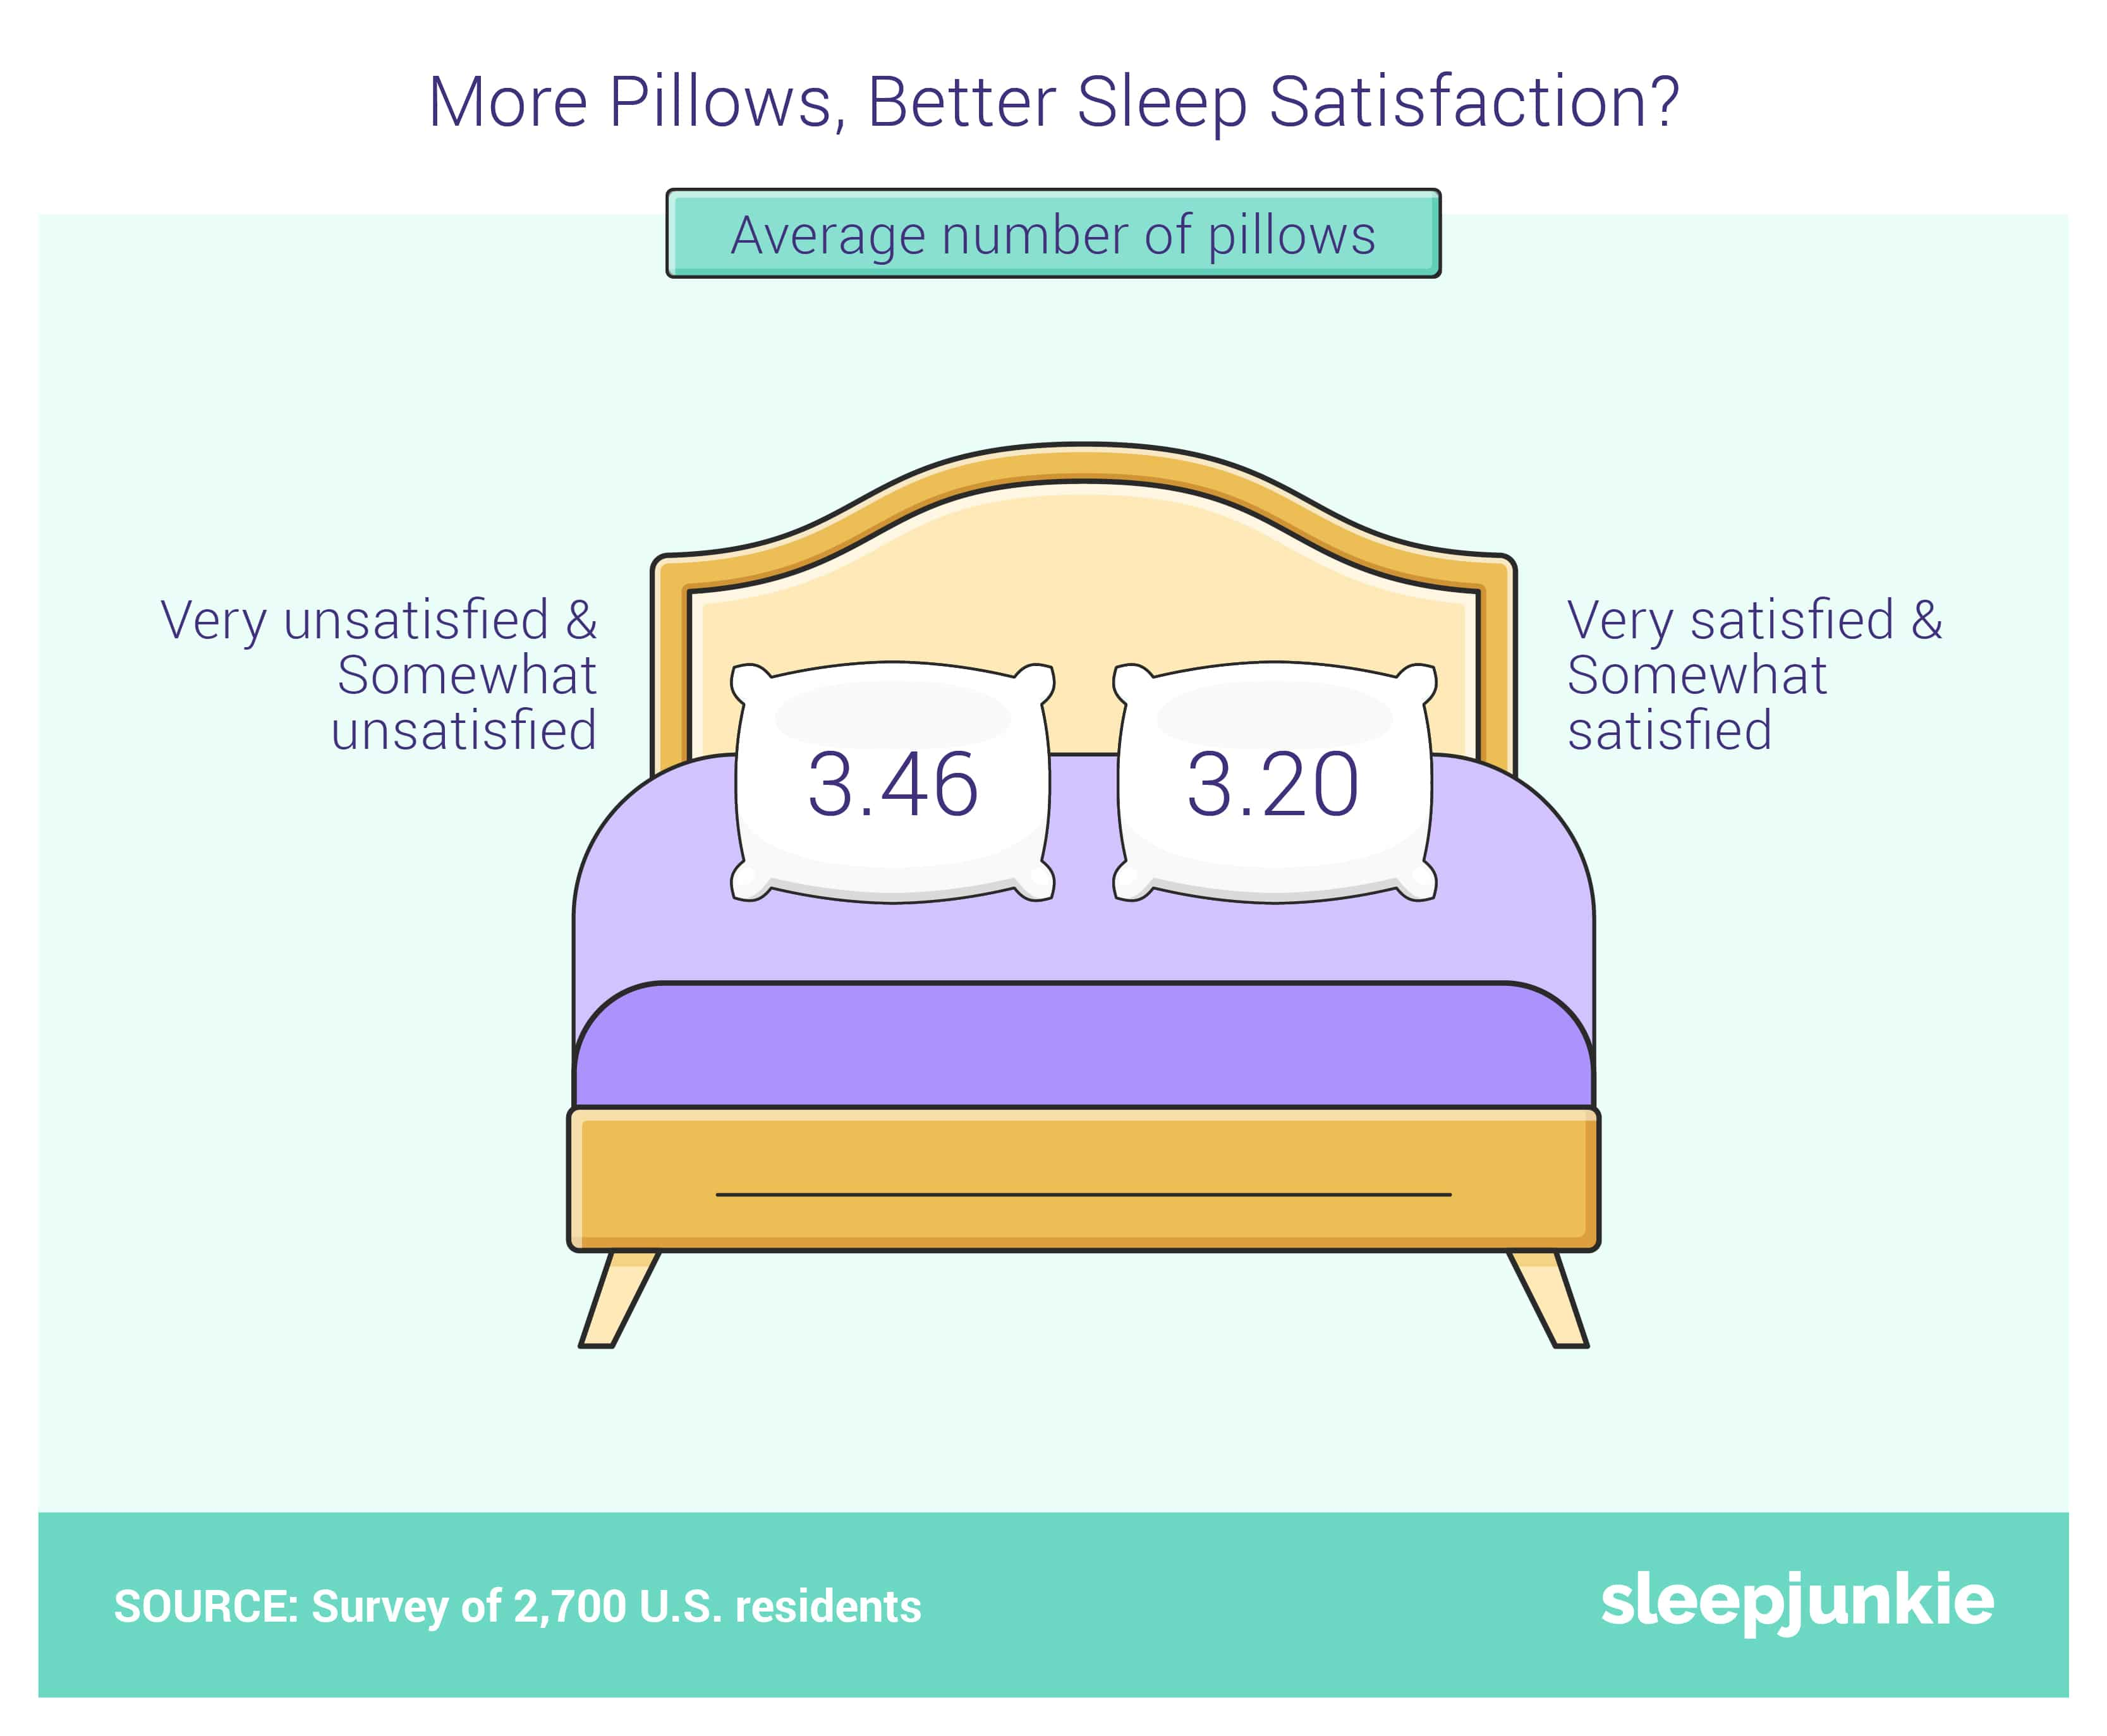 more pillows lead to better sleep